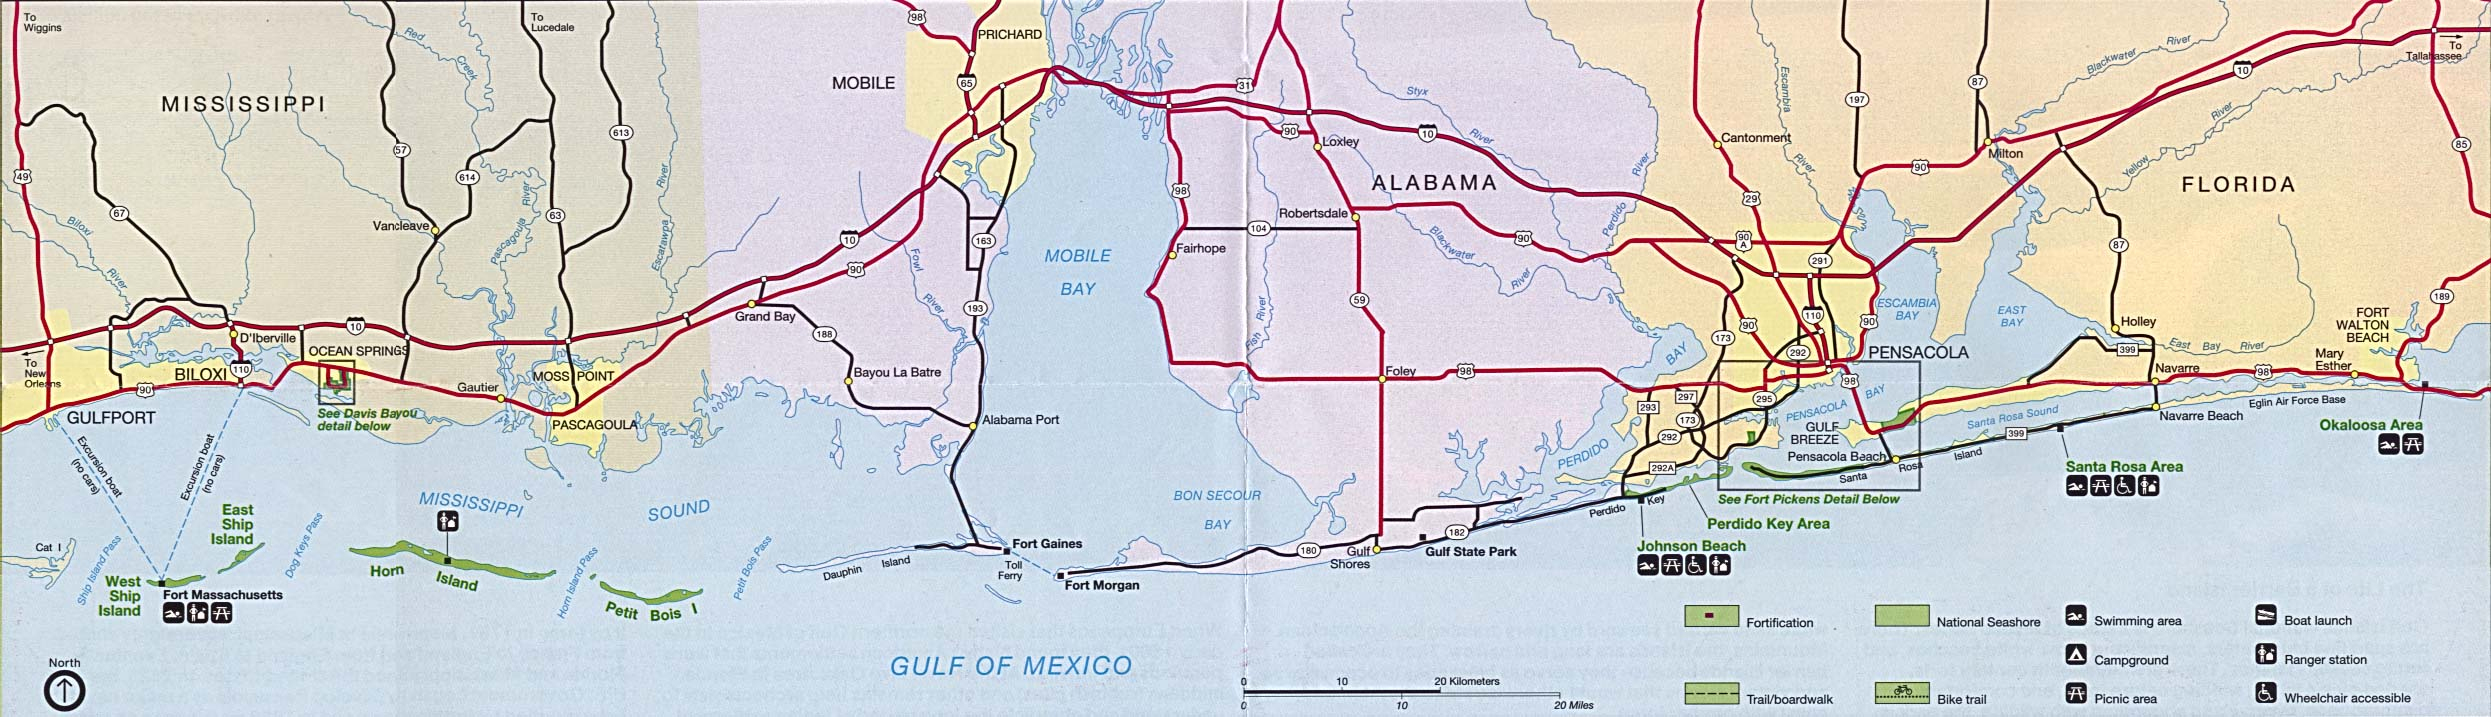 Alabama Maps - Perry-Castañeda Map Collection - Ut Library Online - Map Of Alabama And Florida Beaches